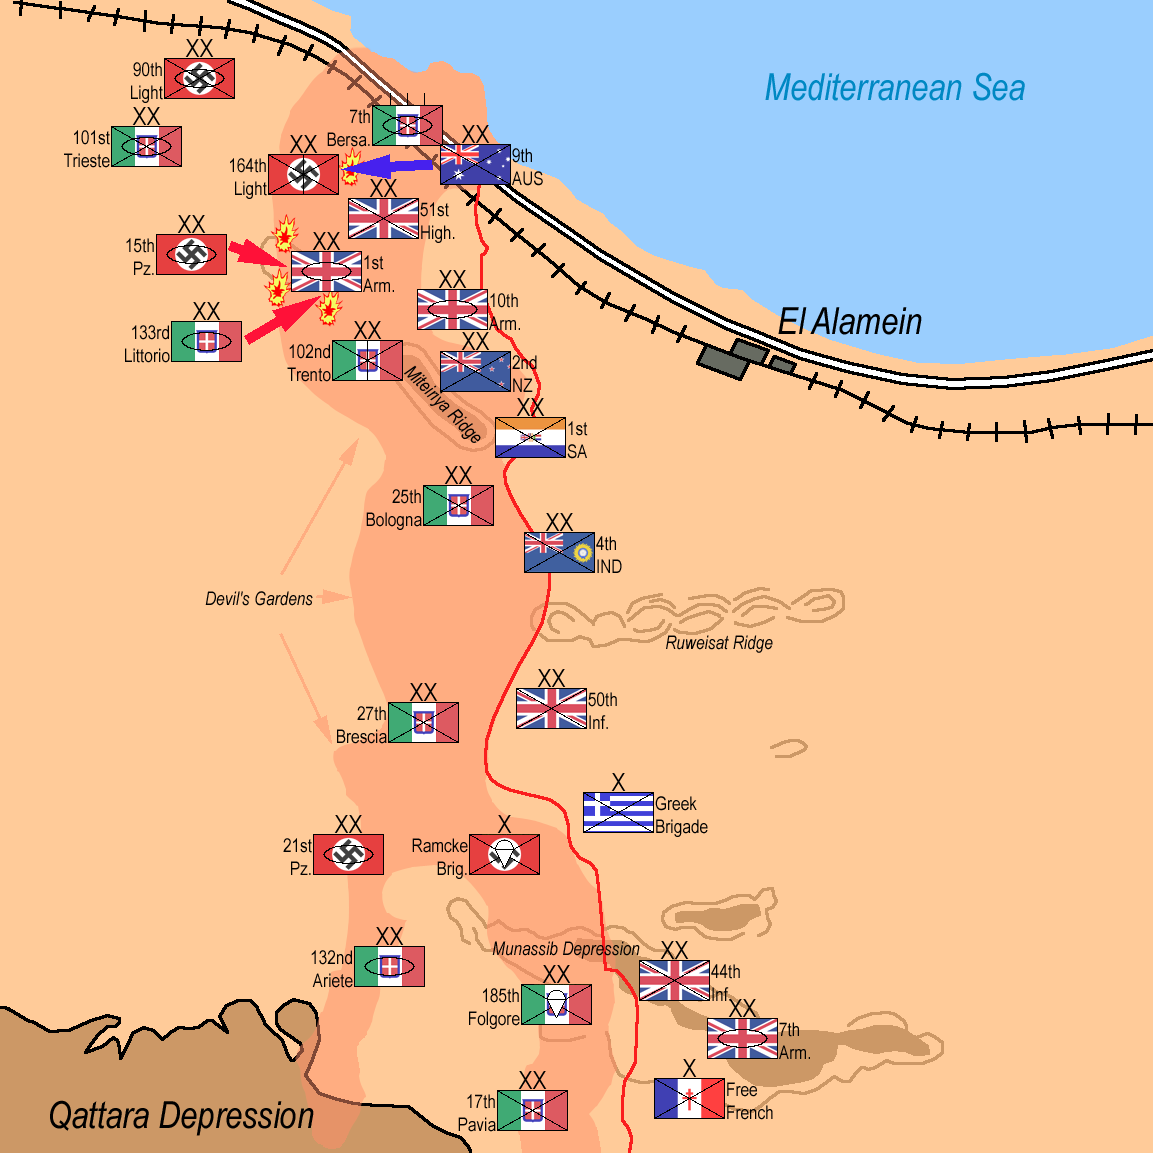 Battle for El Alamein